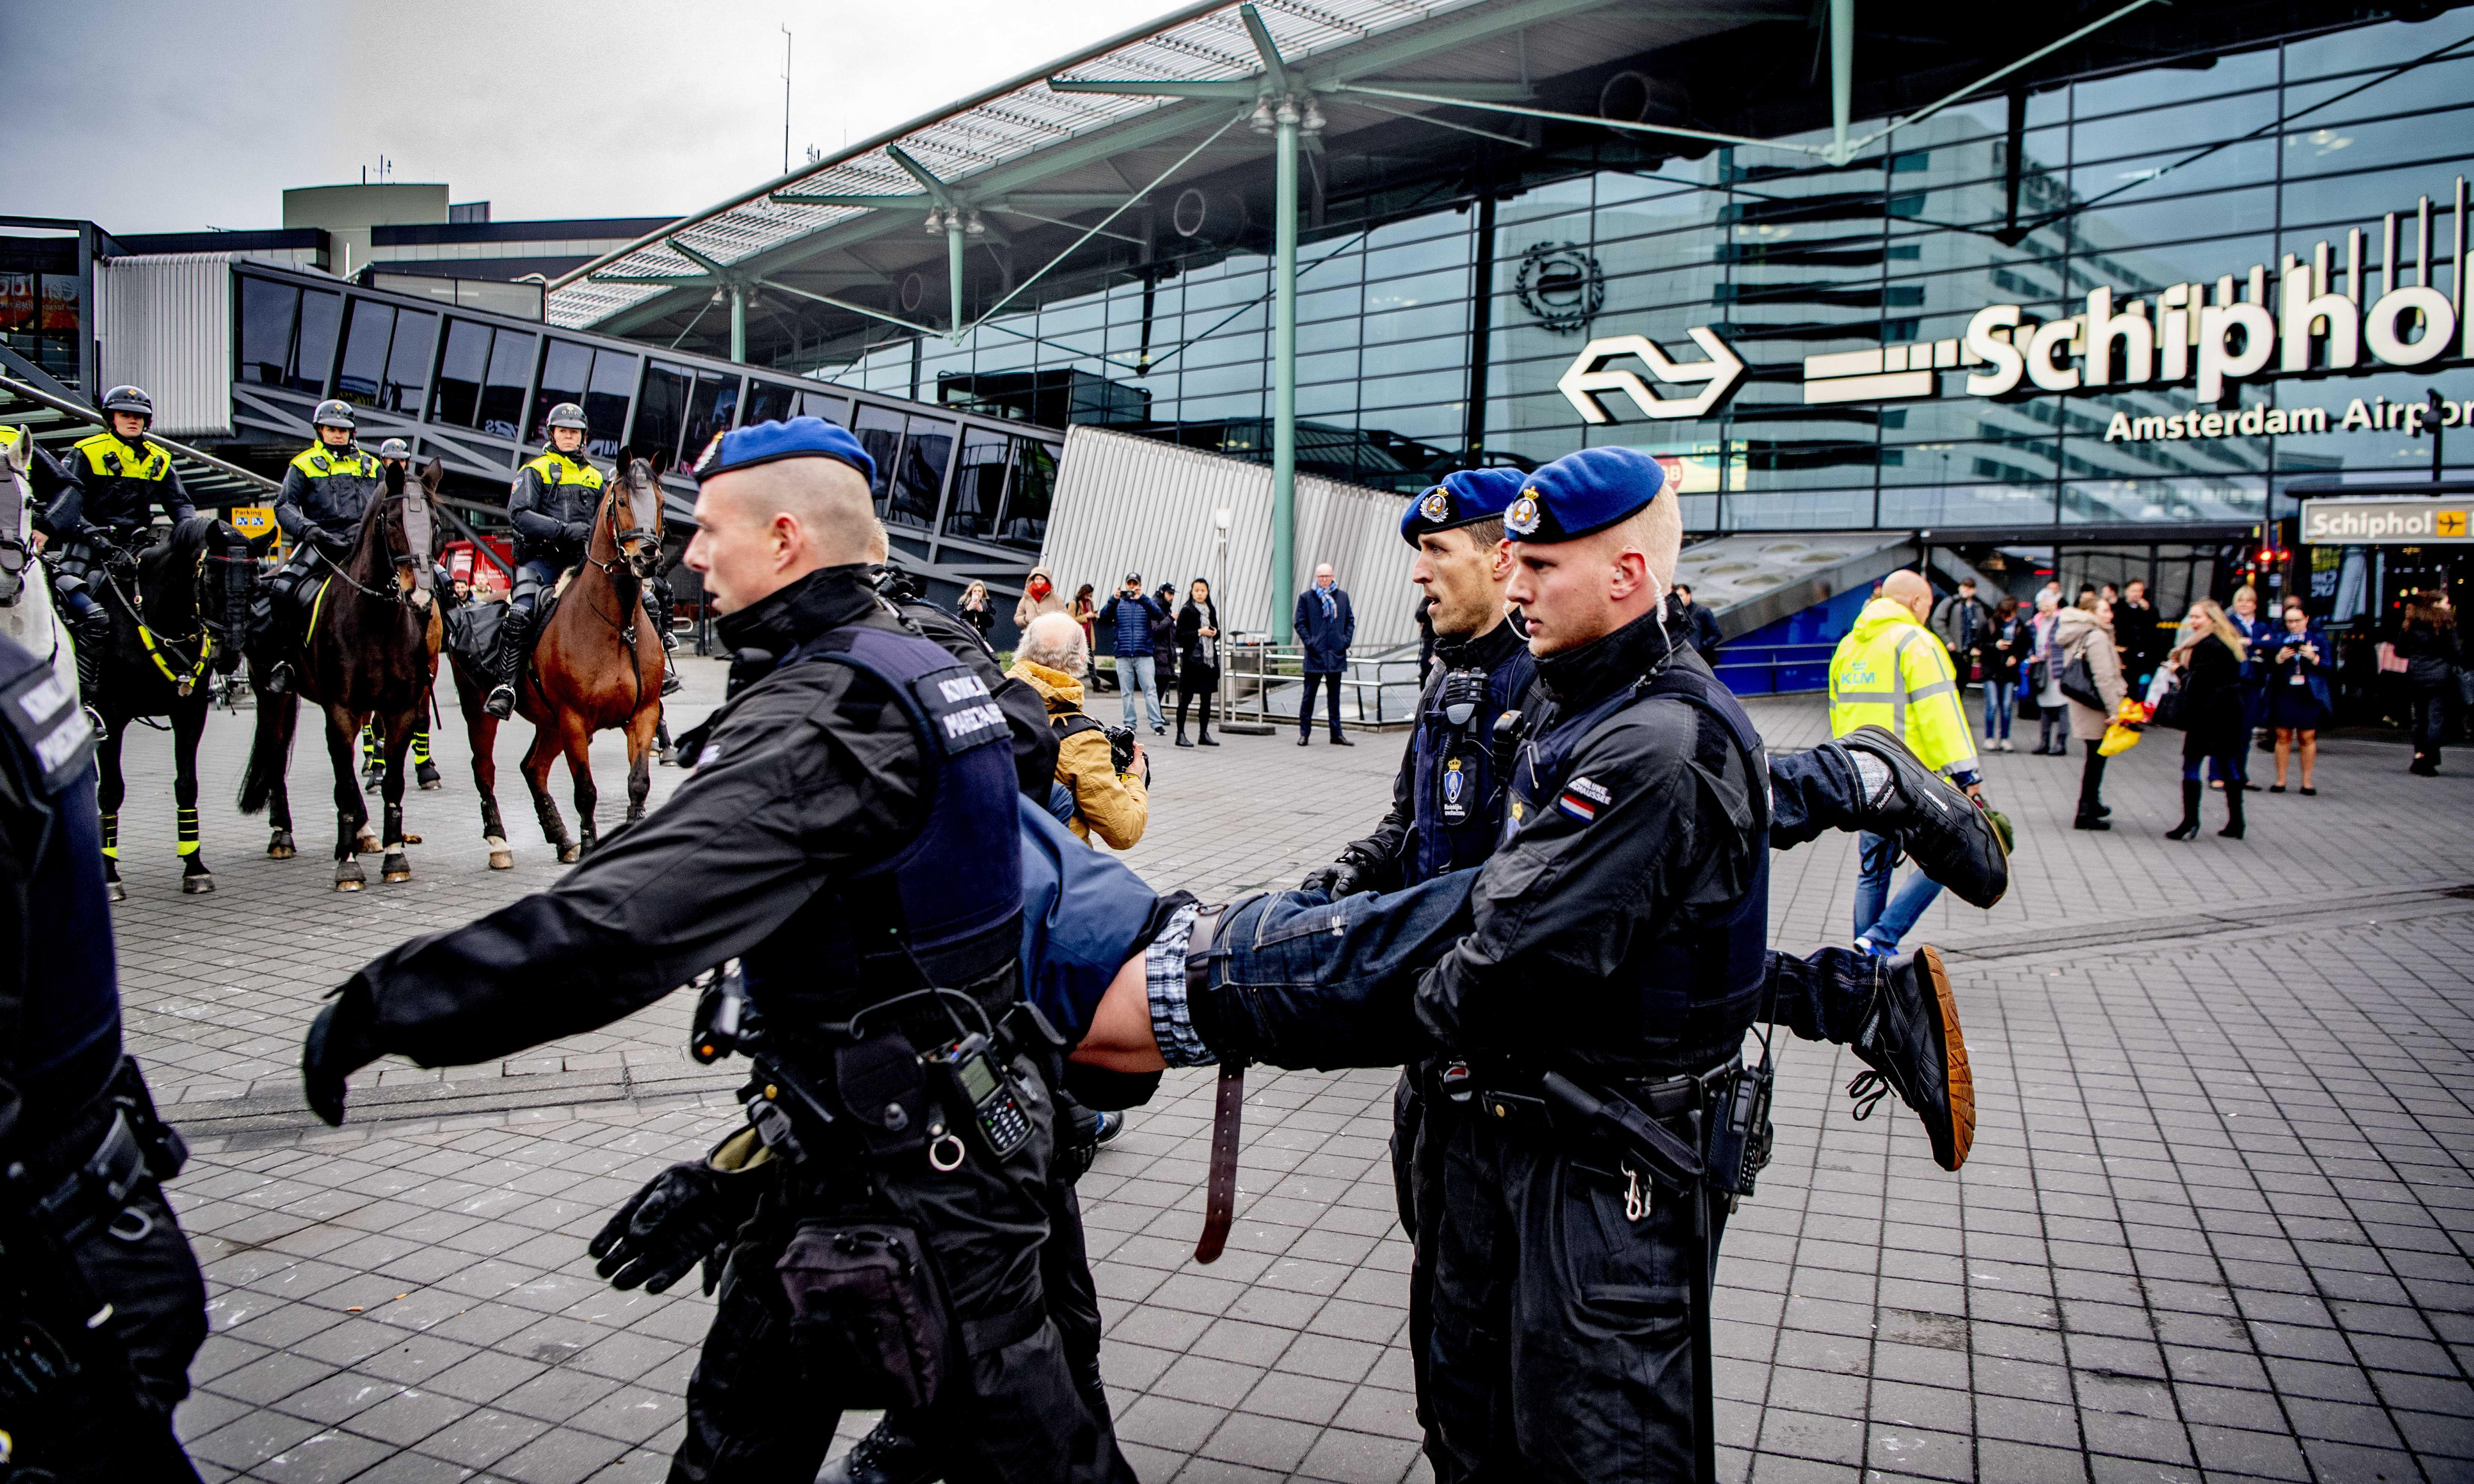 Military police remove climate protesters from Schiphol airport